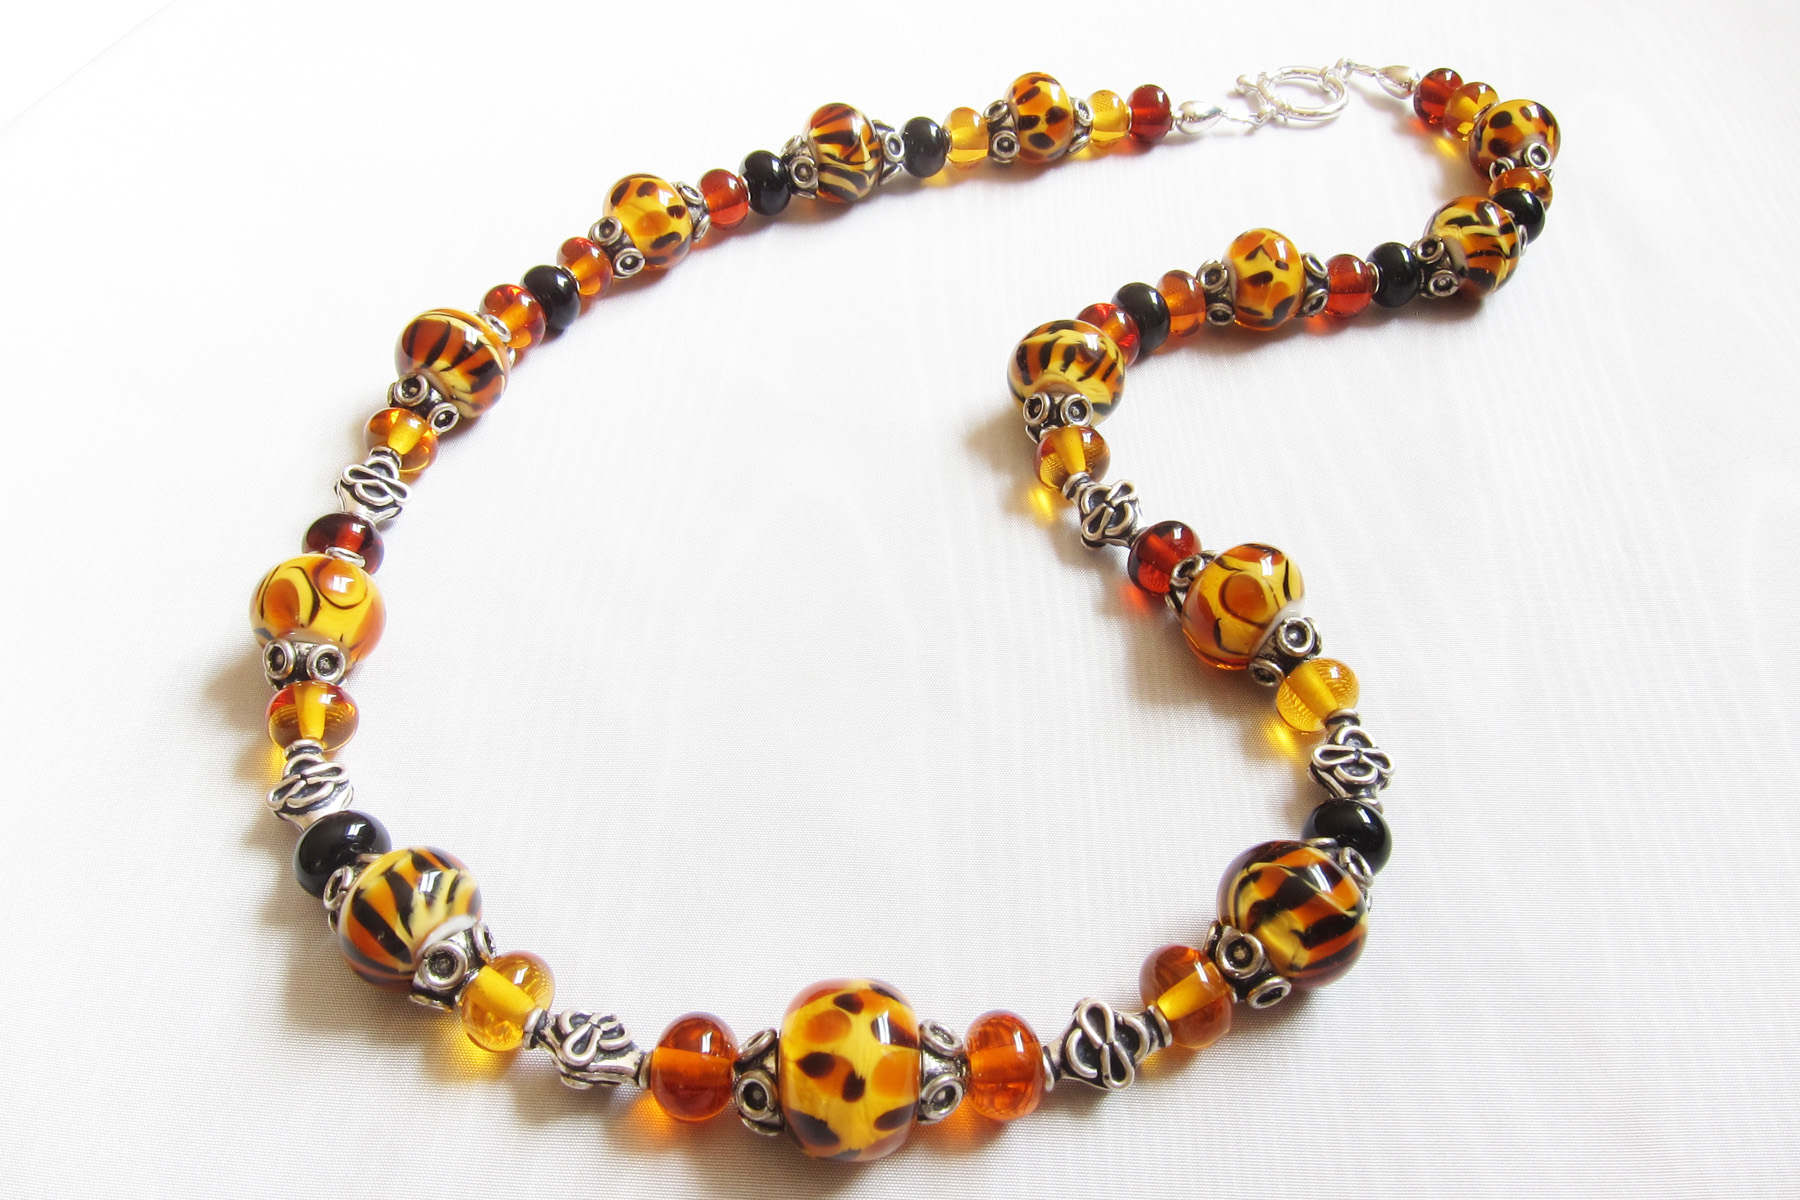 Bad Kitty Queen of the Jungle Bead Necklace